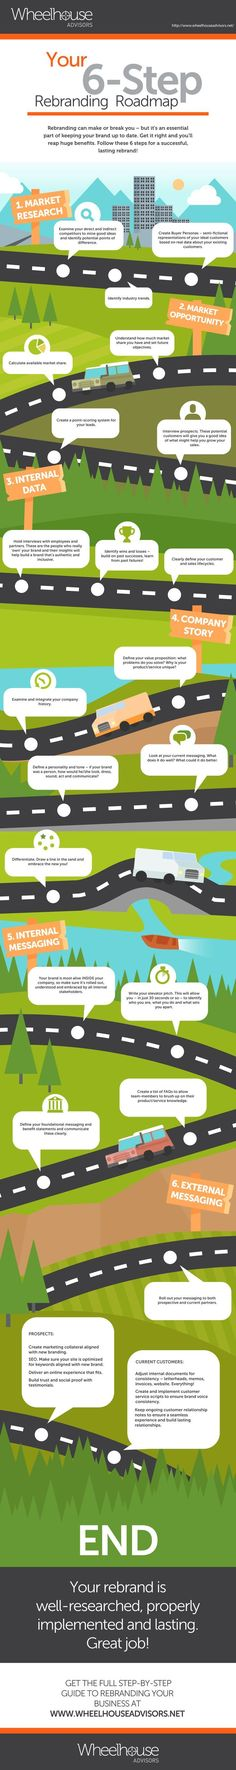 Your Six Step Rebranding Roadmap #Infographic #Business #Branding